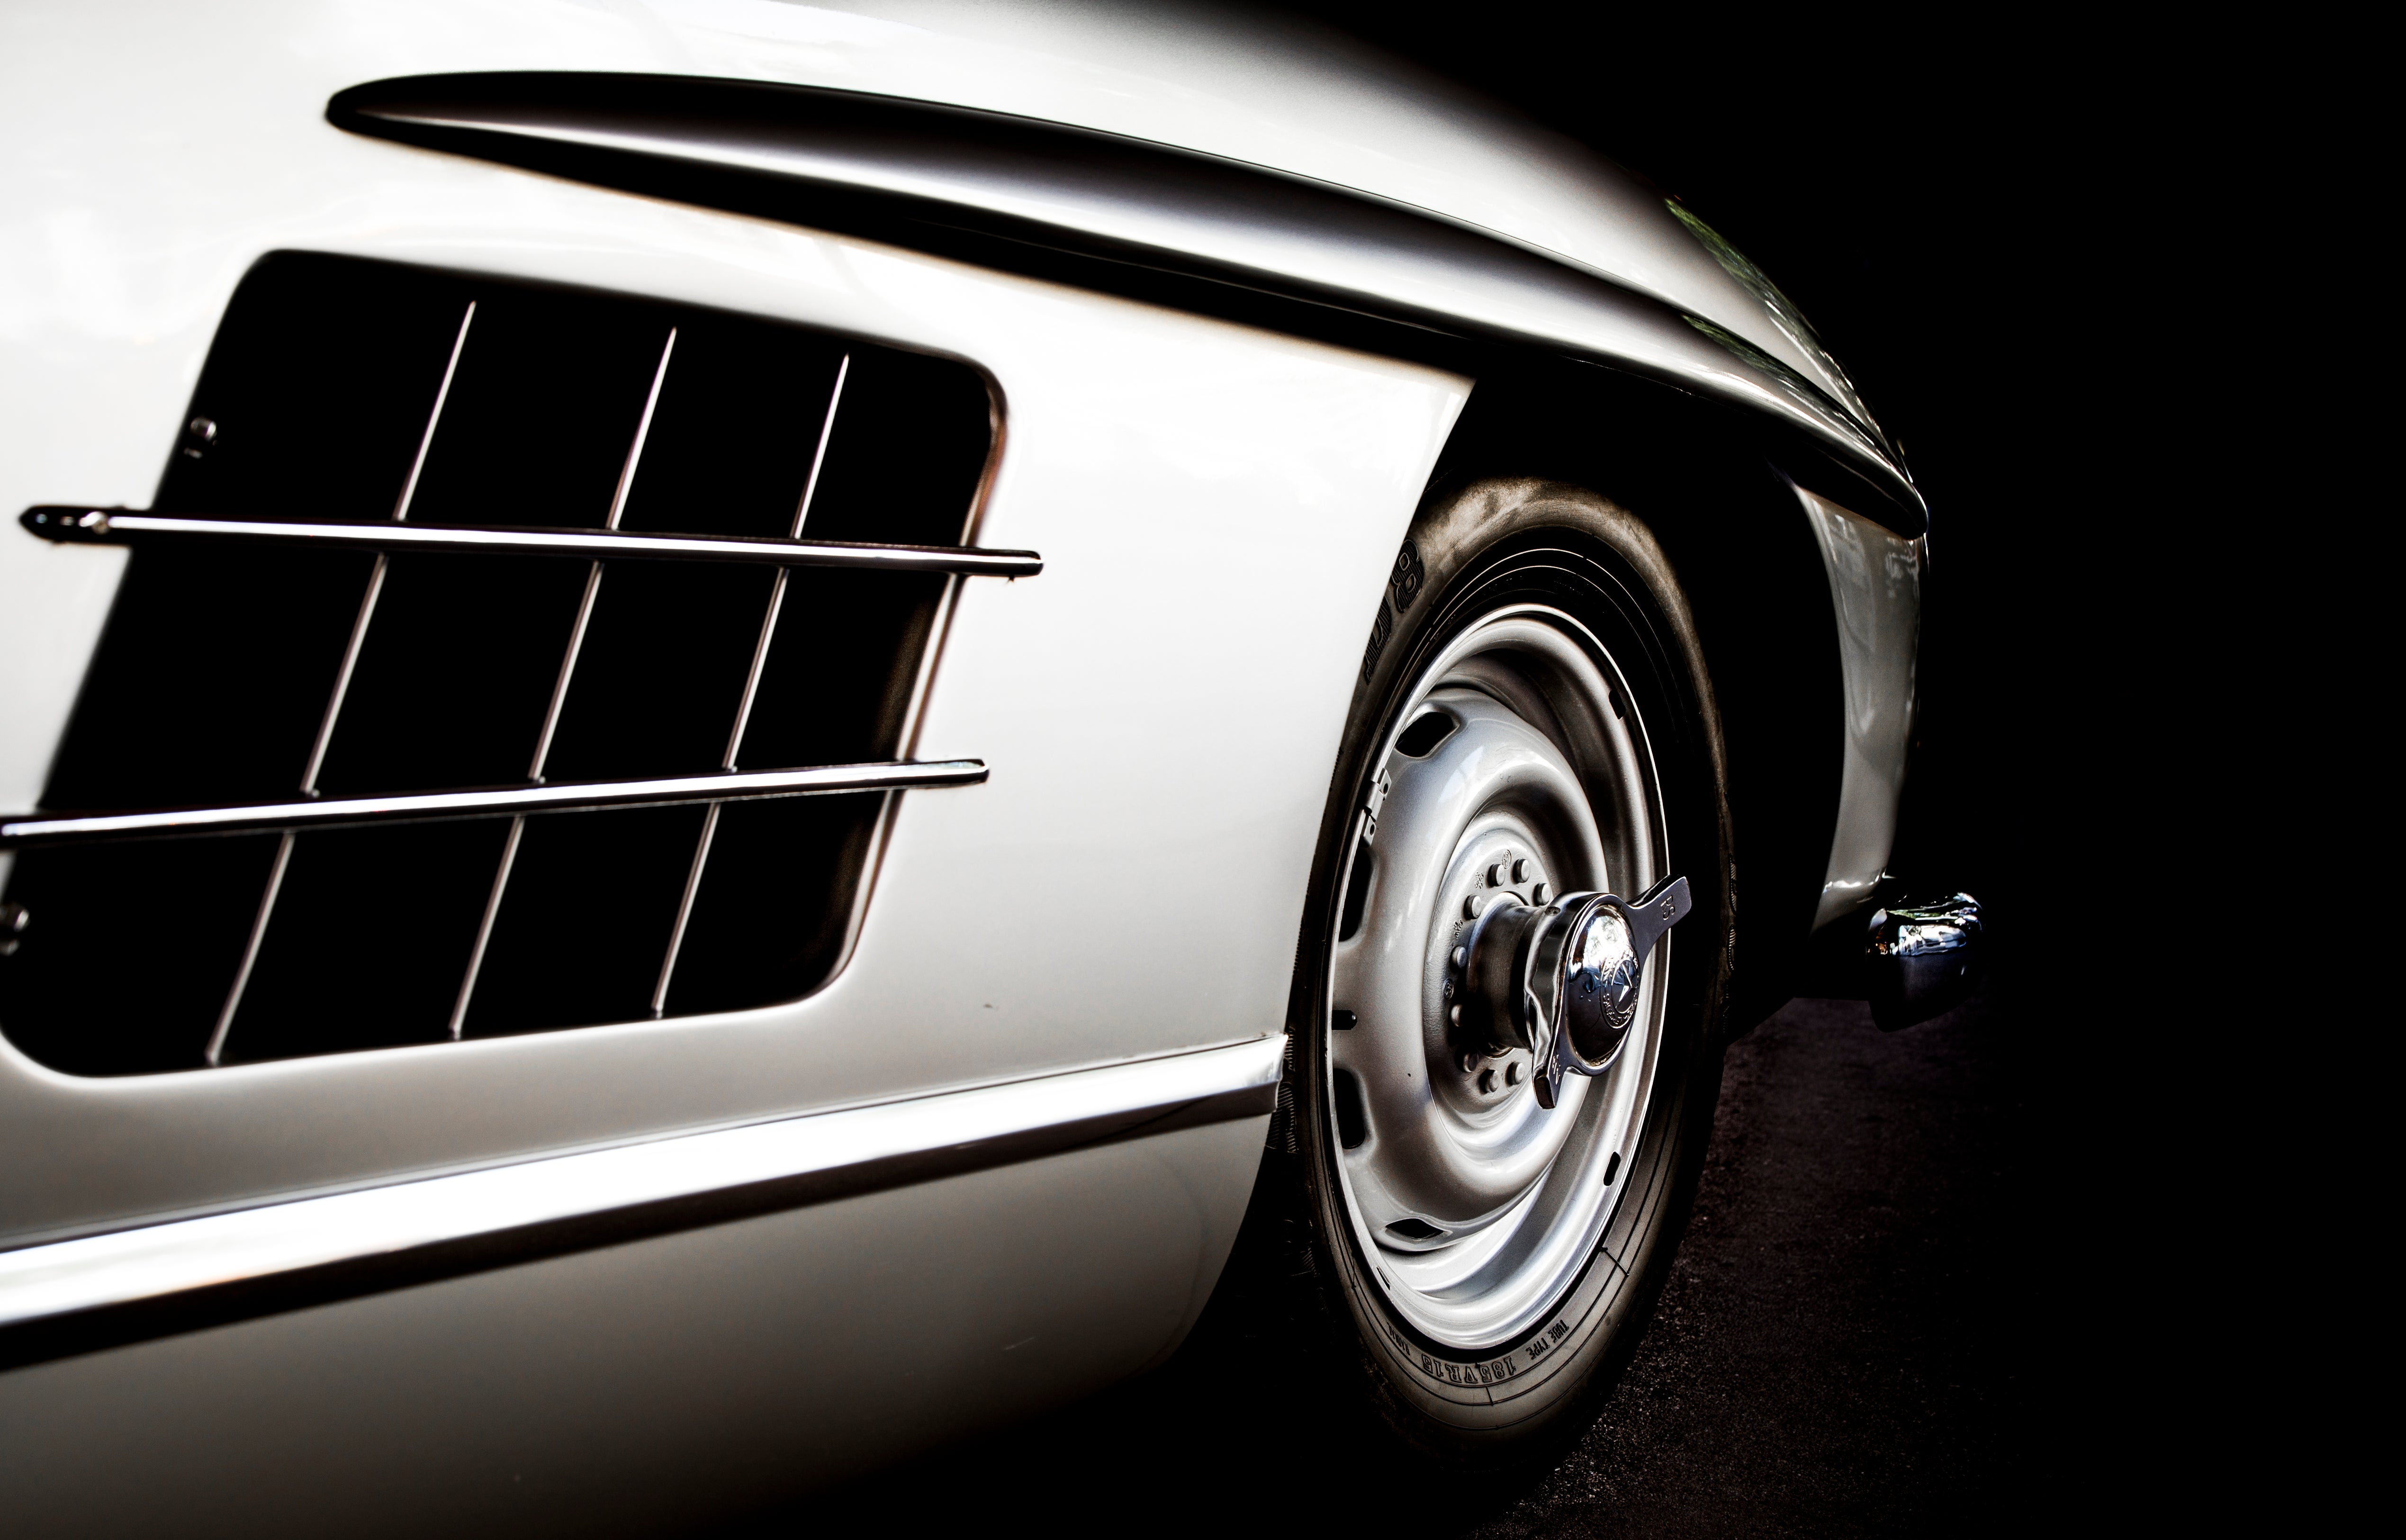 300sl 254 wallpaper - photo #36